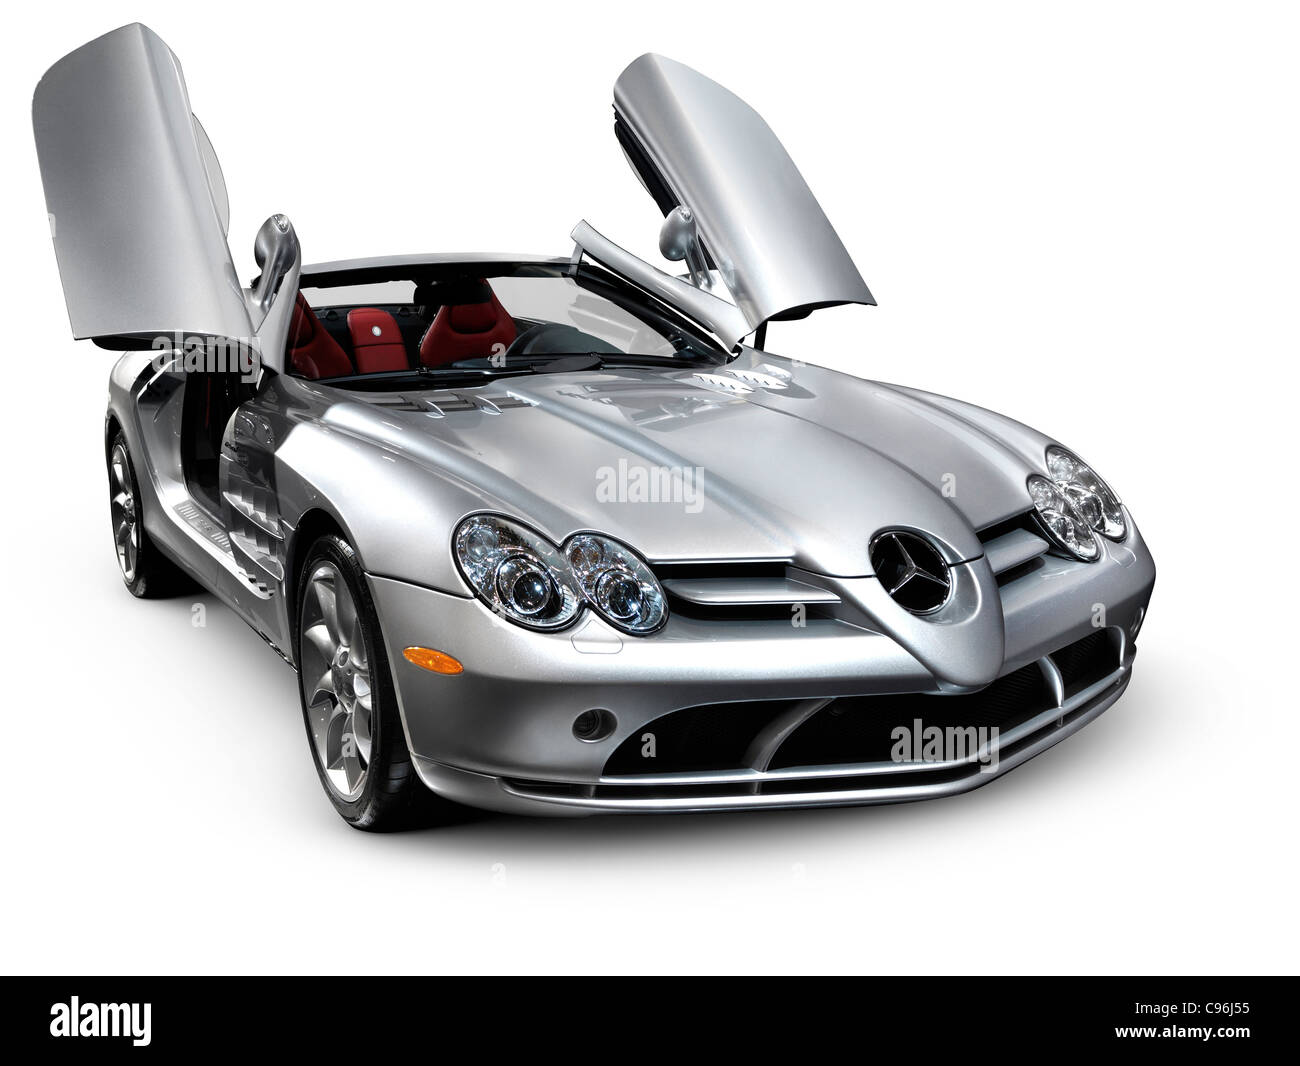 Mercedes benz slr mclaren roadster anglo german sports car for Sports car mercedes benz